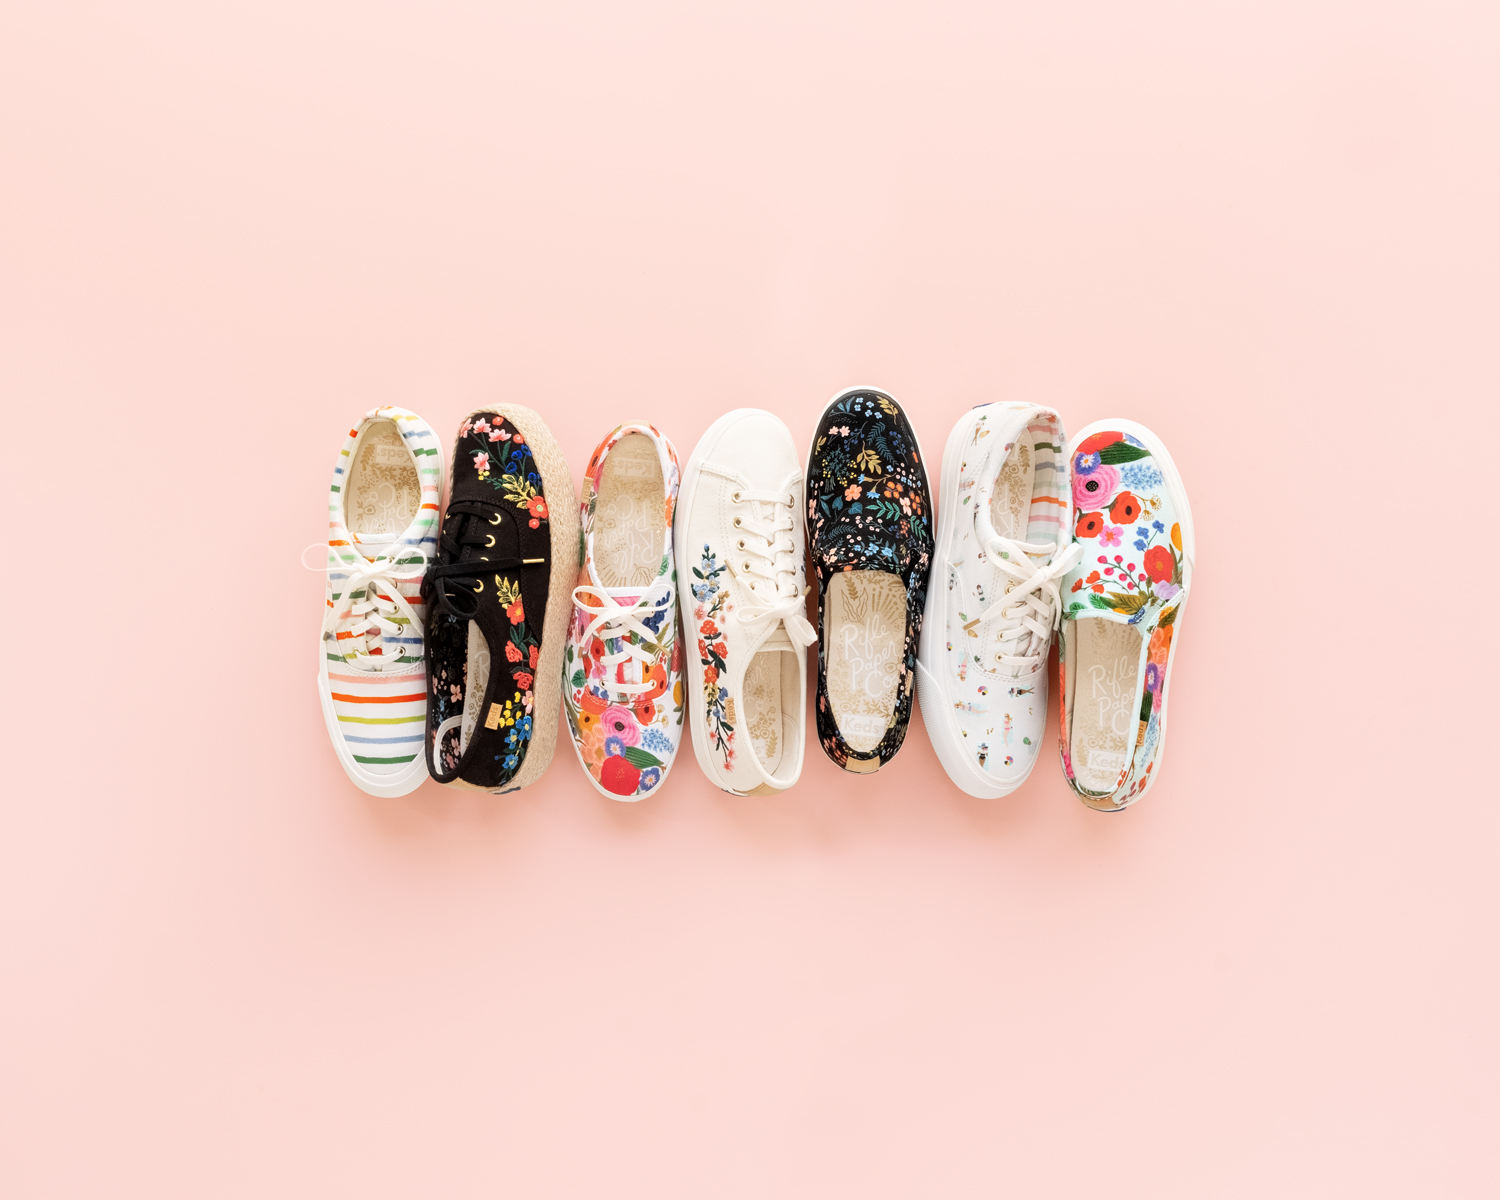 You Can Coordinate Your Wedding Website and Stationery to Keds and Rifle Paper Co.'s New Collection